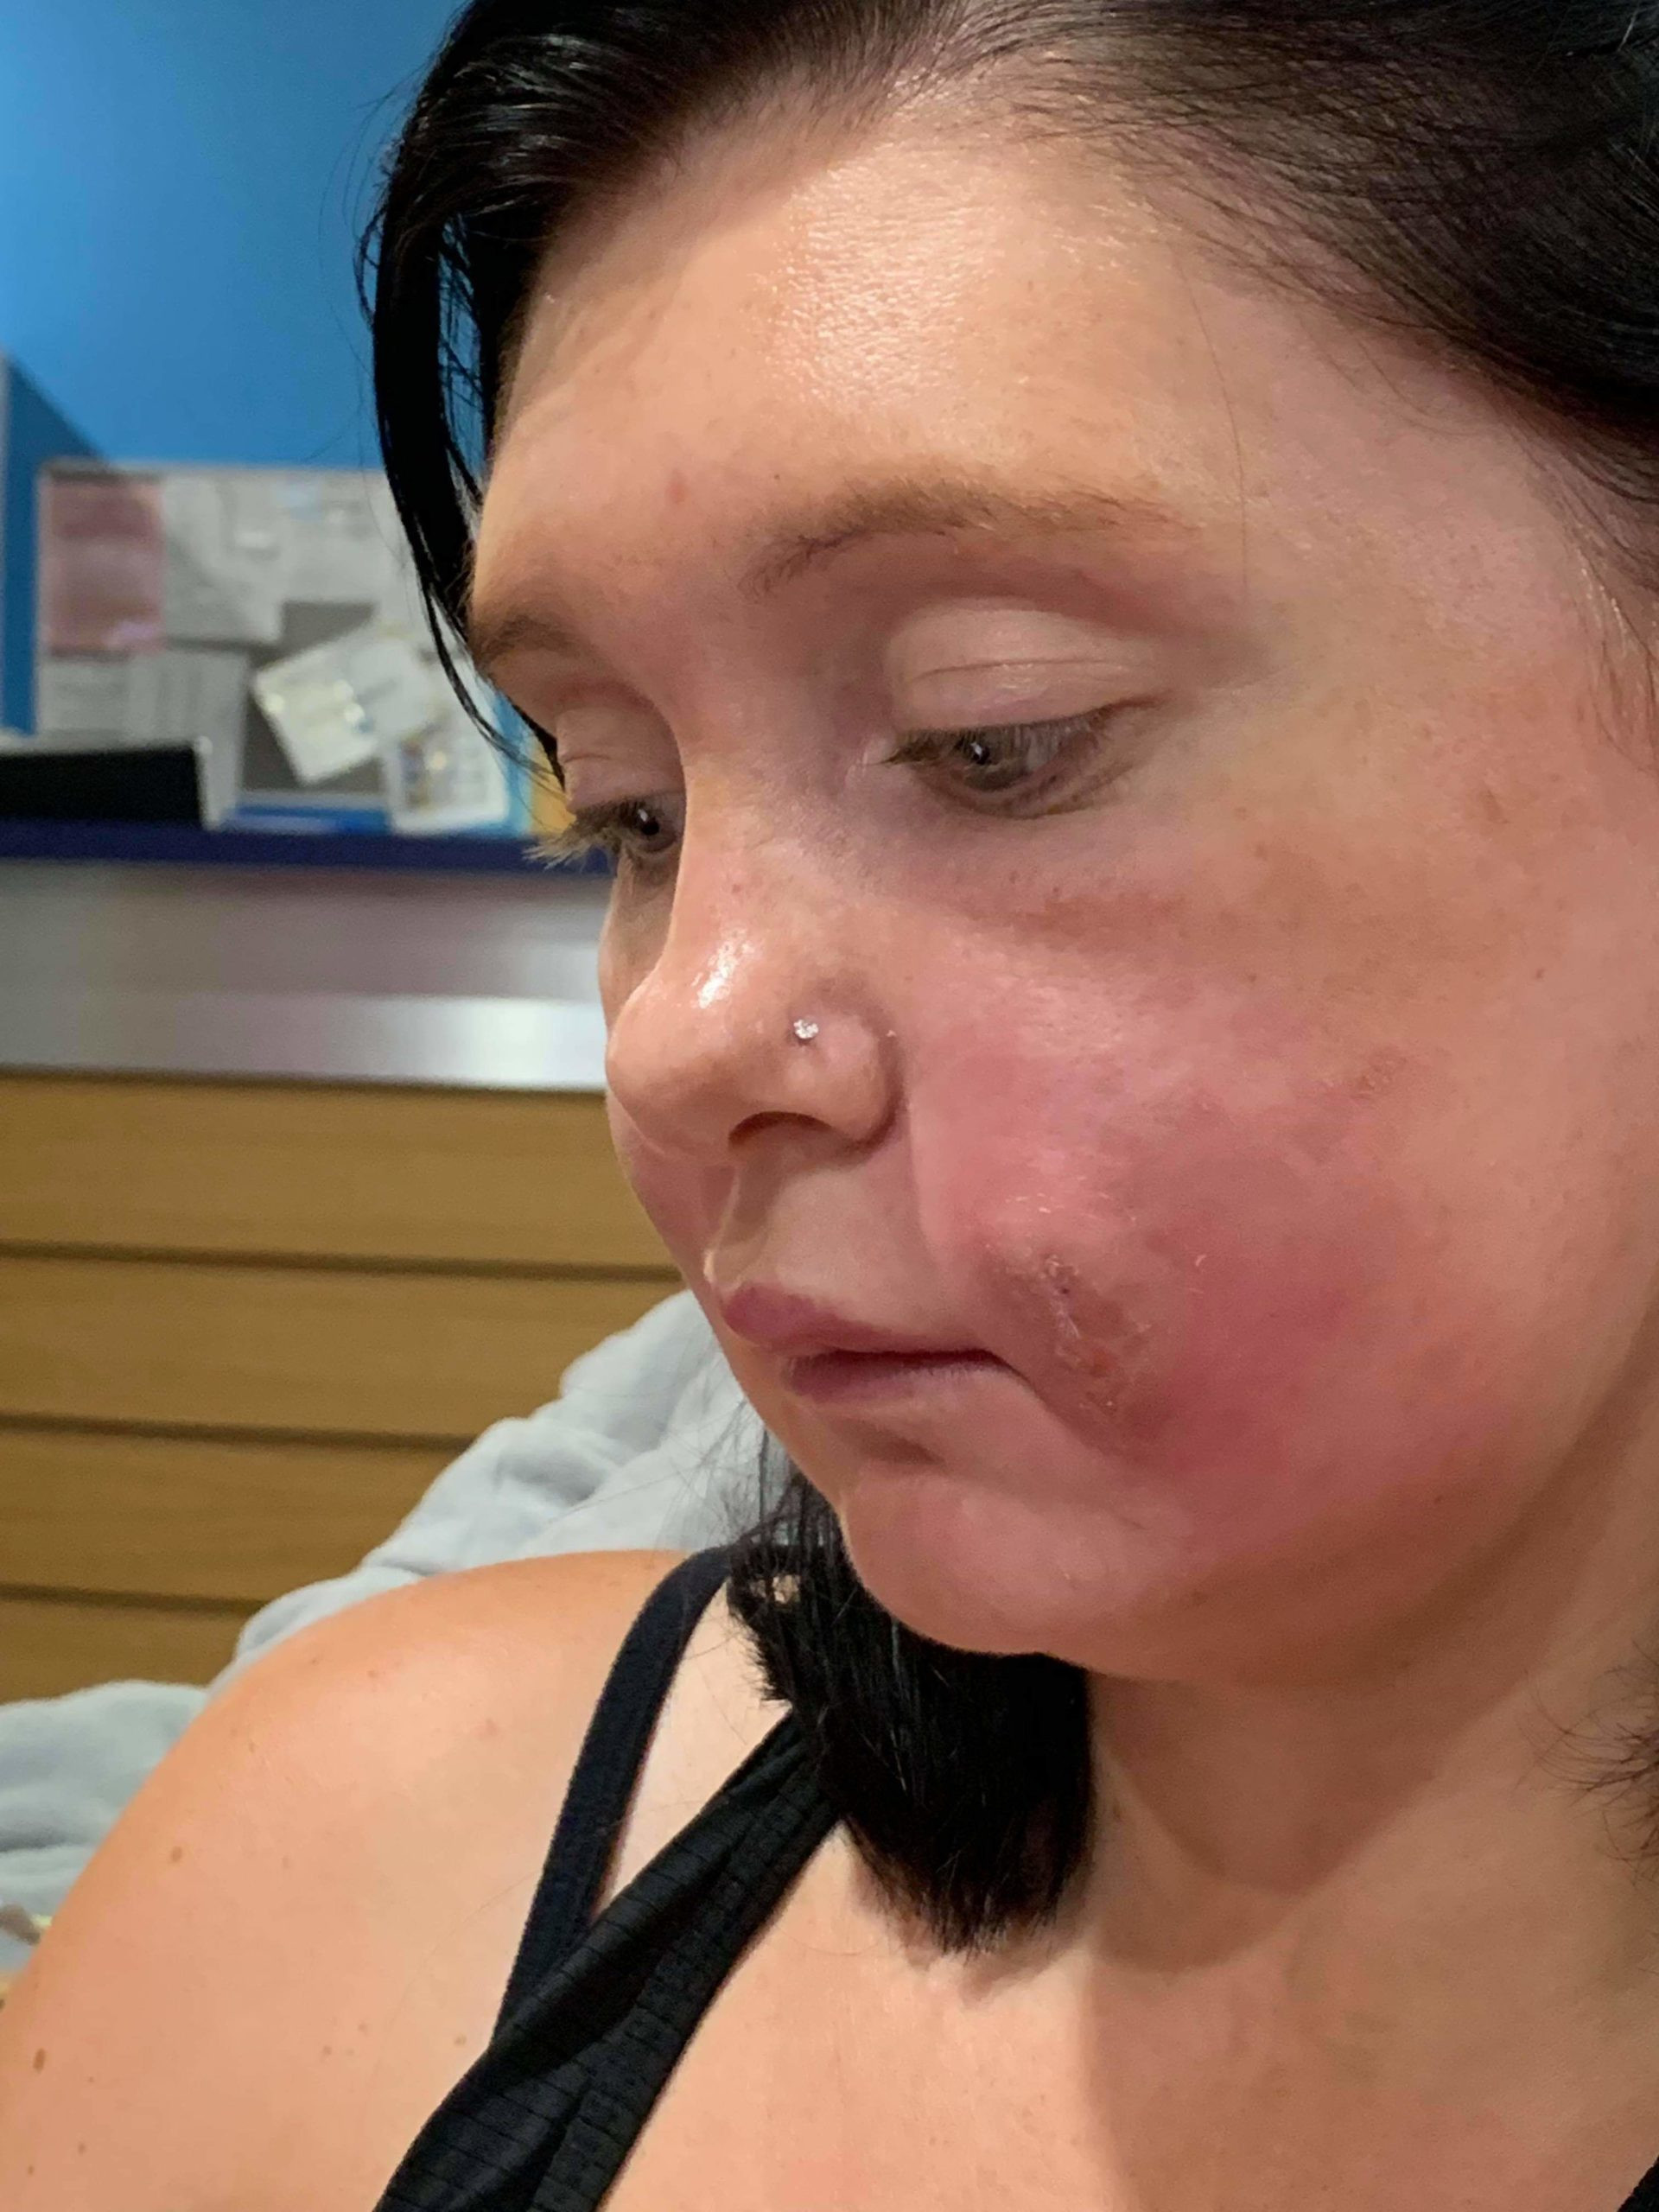 A Large Bump Appears On The Face After The Injection Of Metamizole?